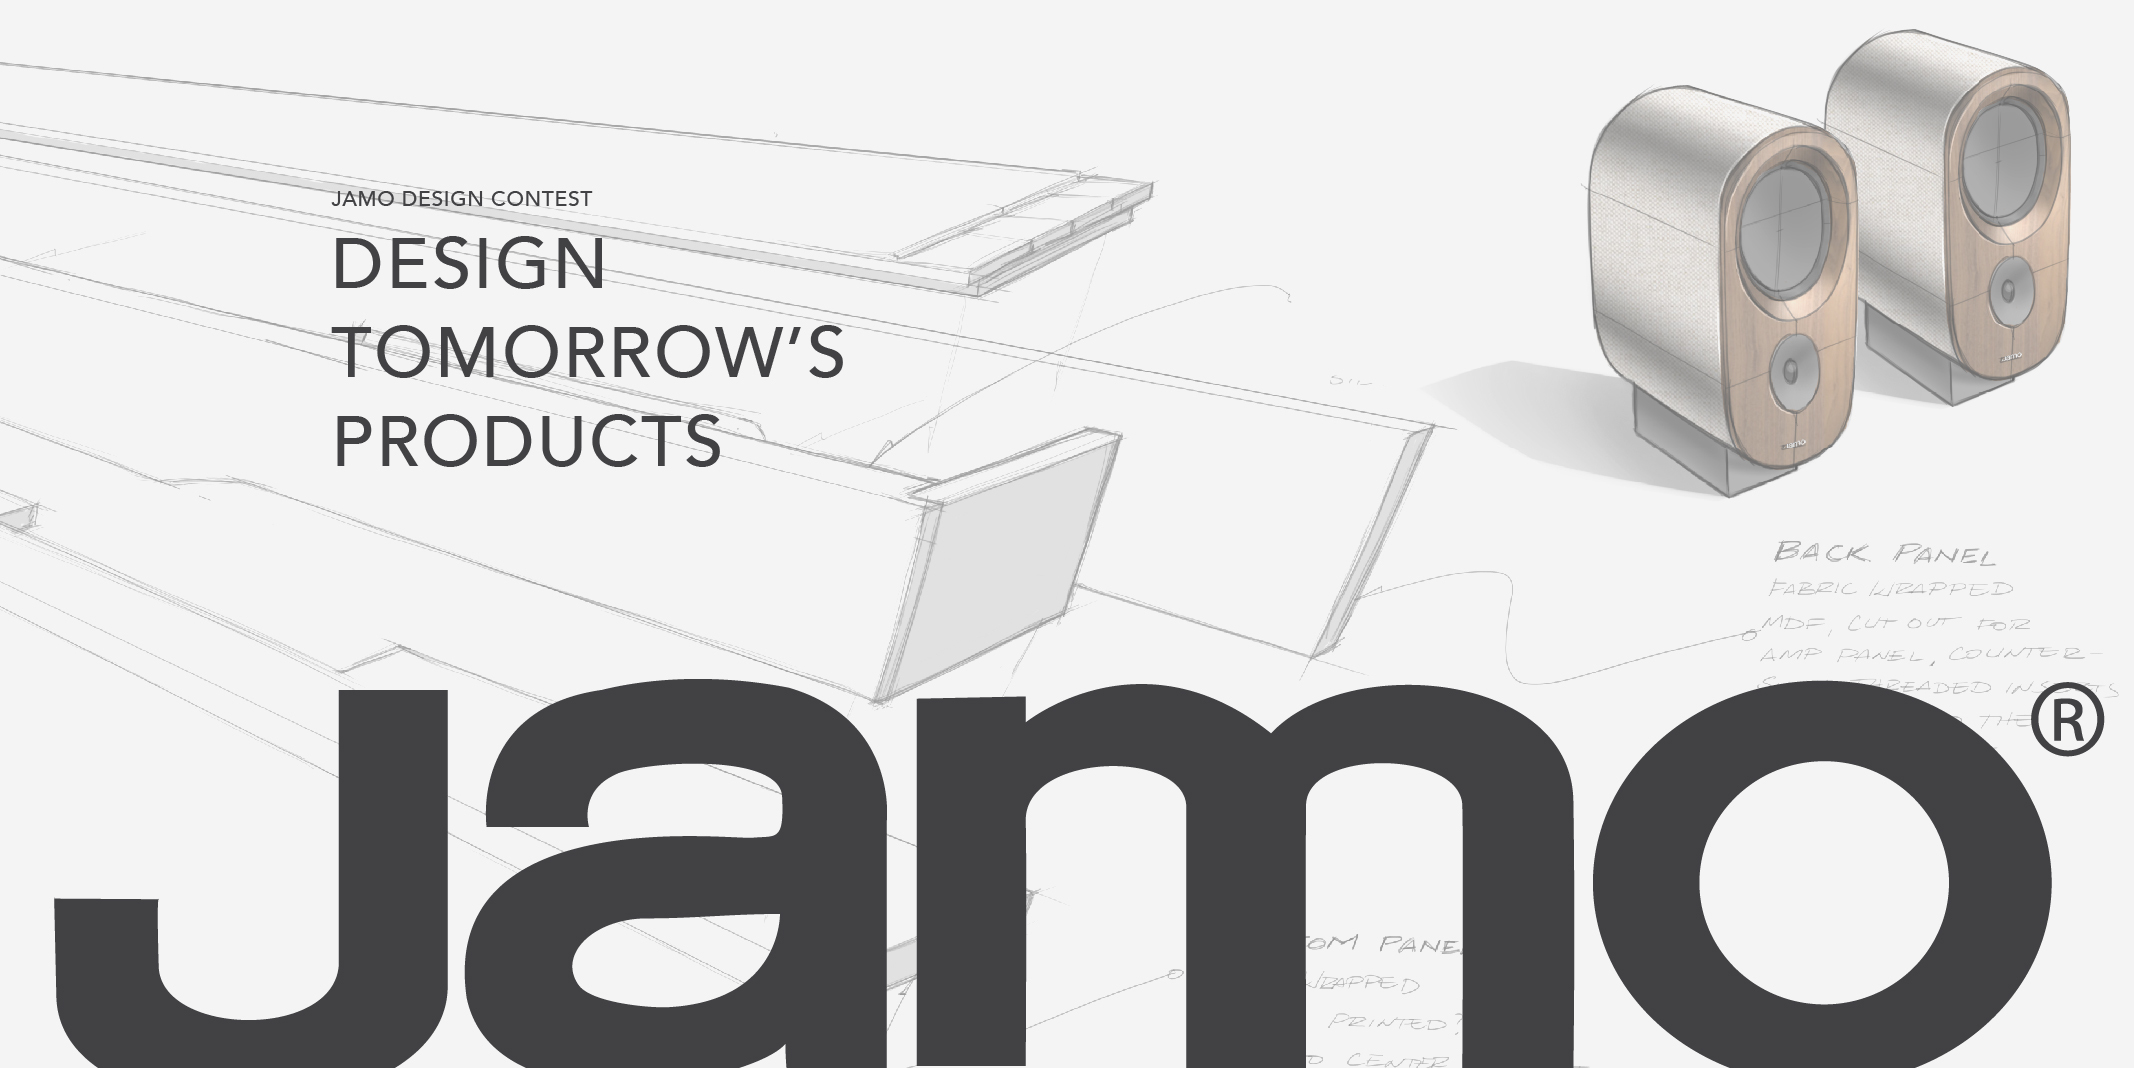 Jamo Design Contest - Design Tomorrow's Products